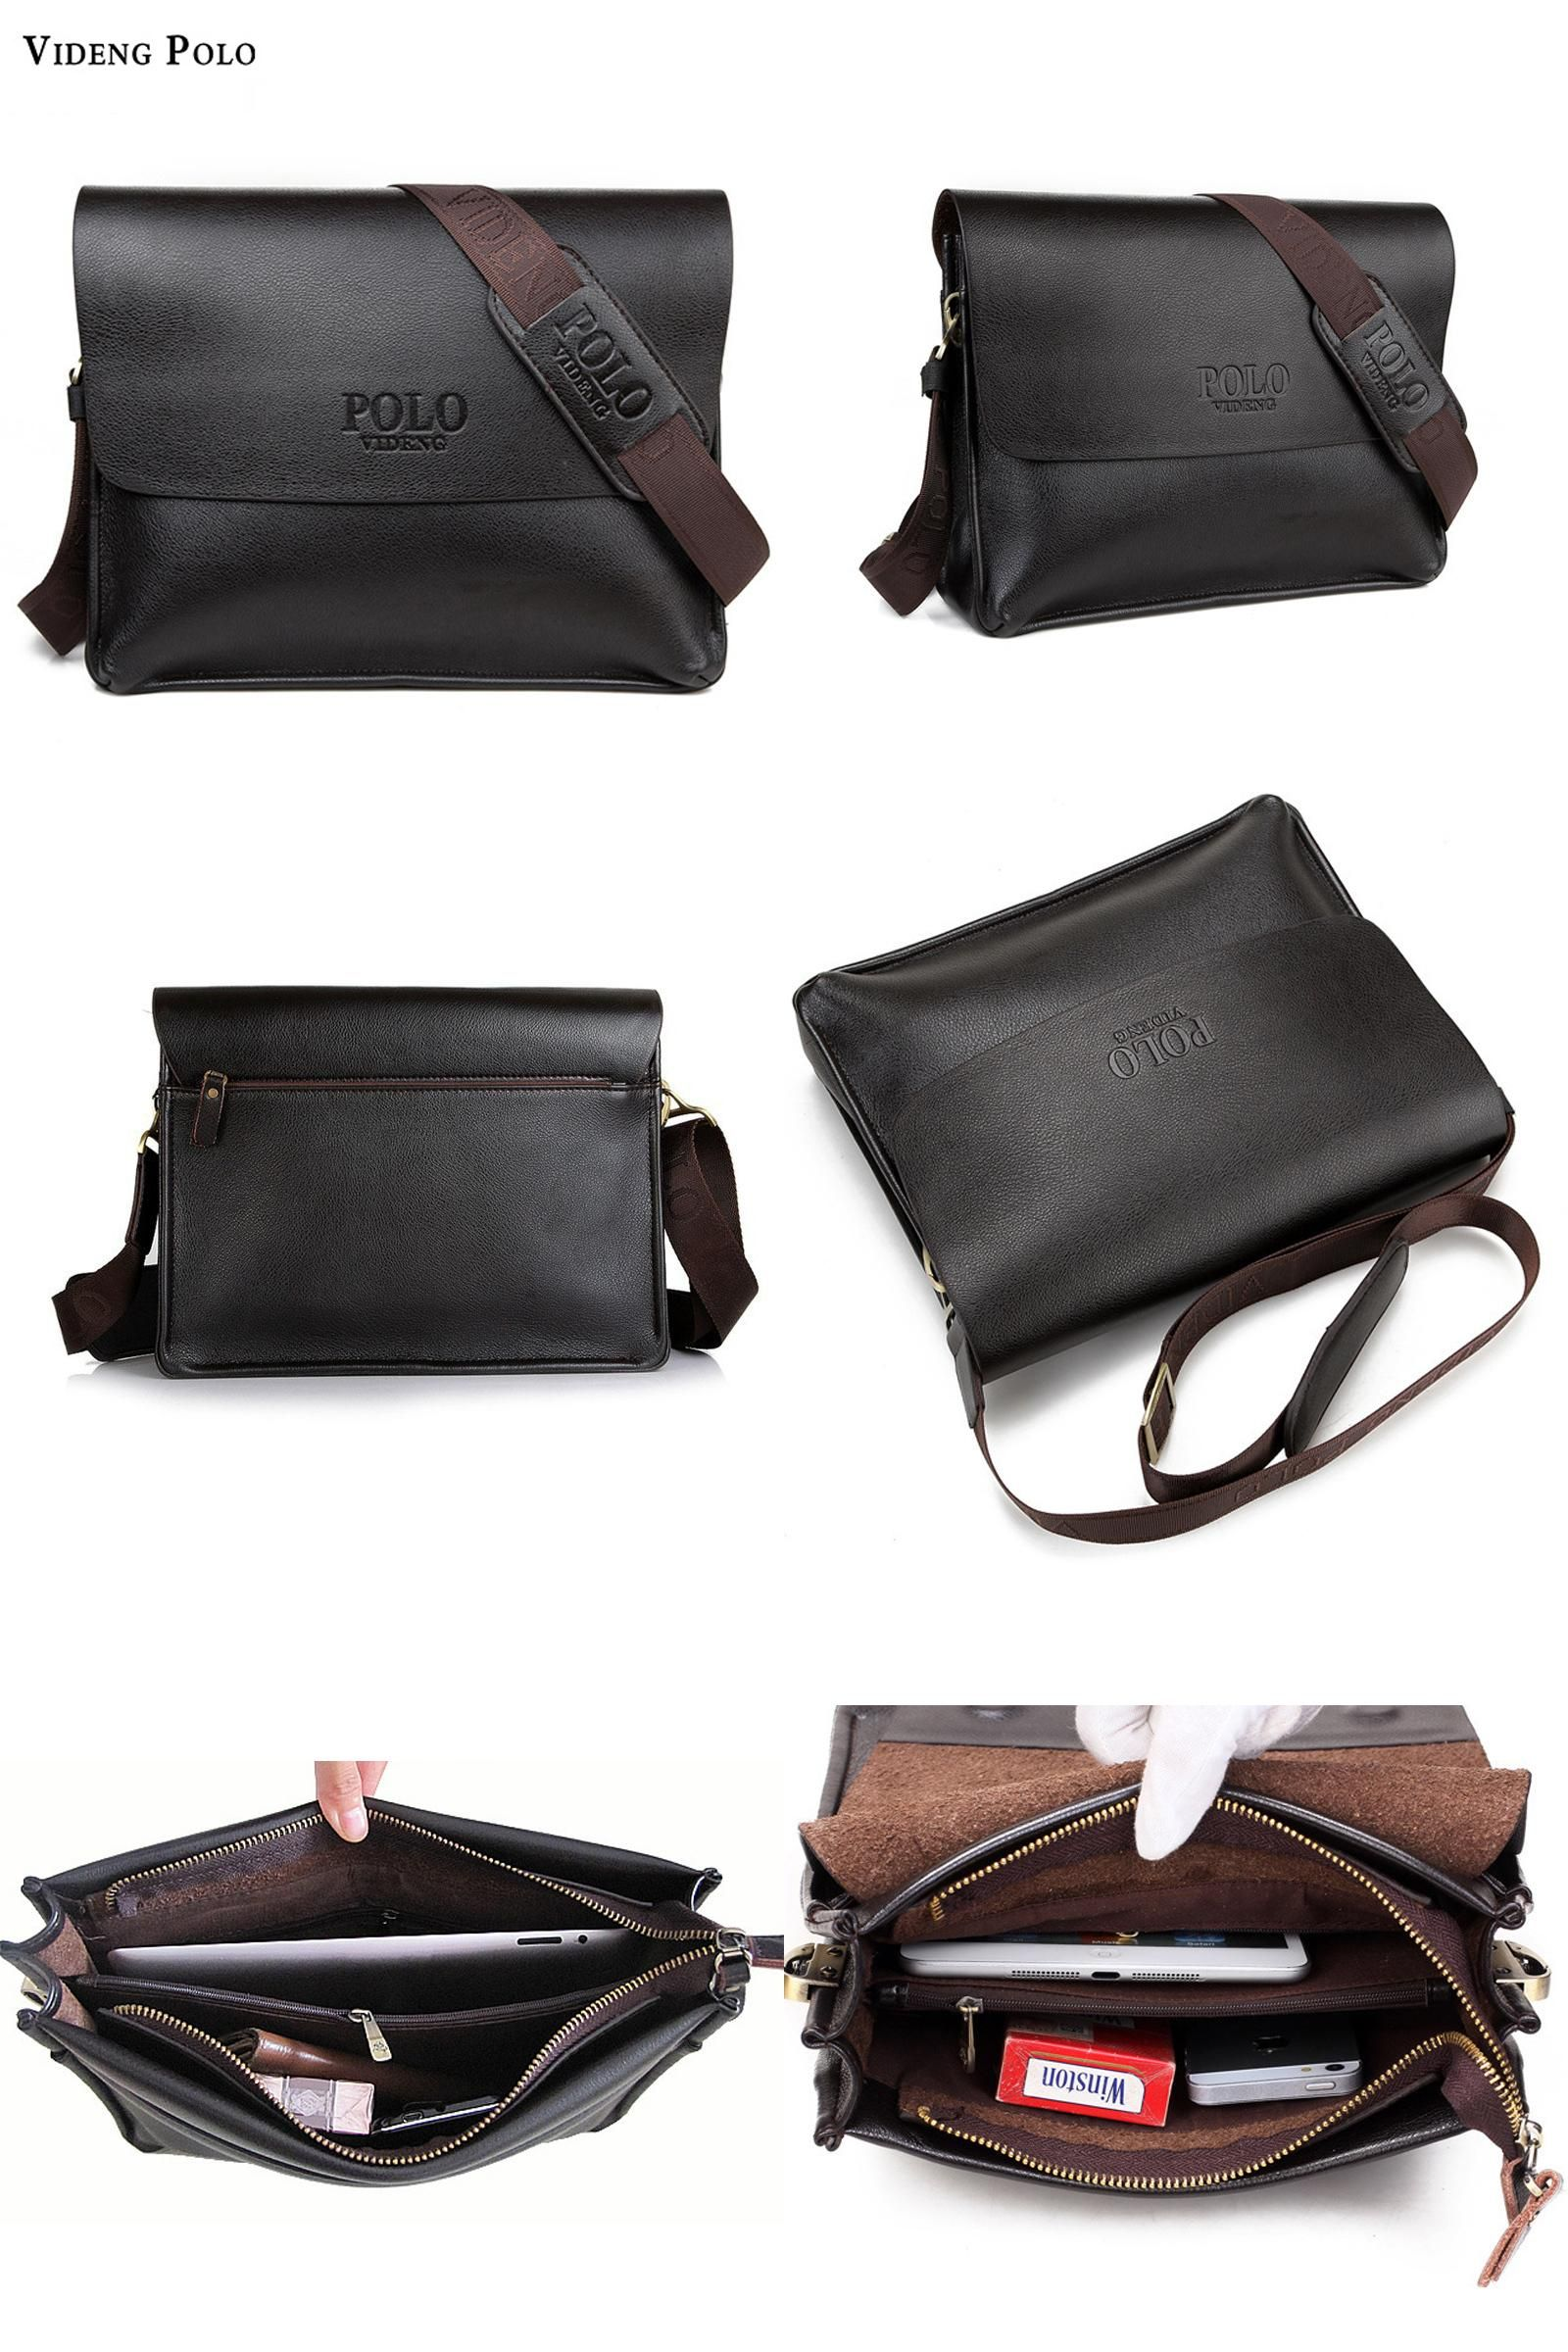 Visit to Buy  VIDENG POLO Brand New Vintga pu leather men bag fashion men f6c2ee6460654